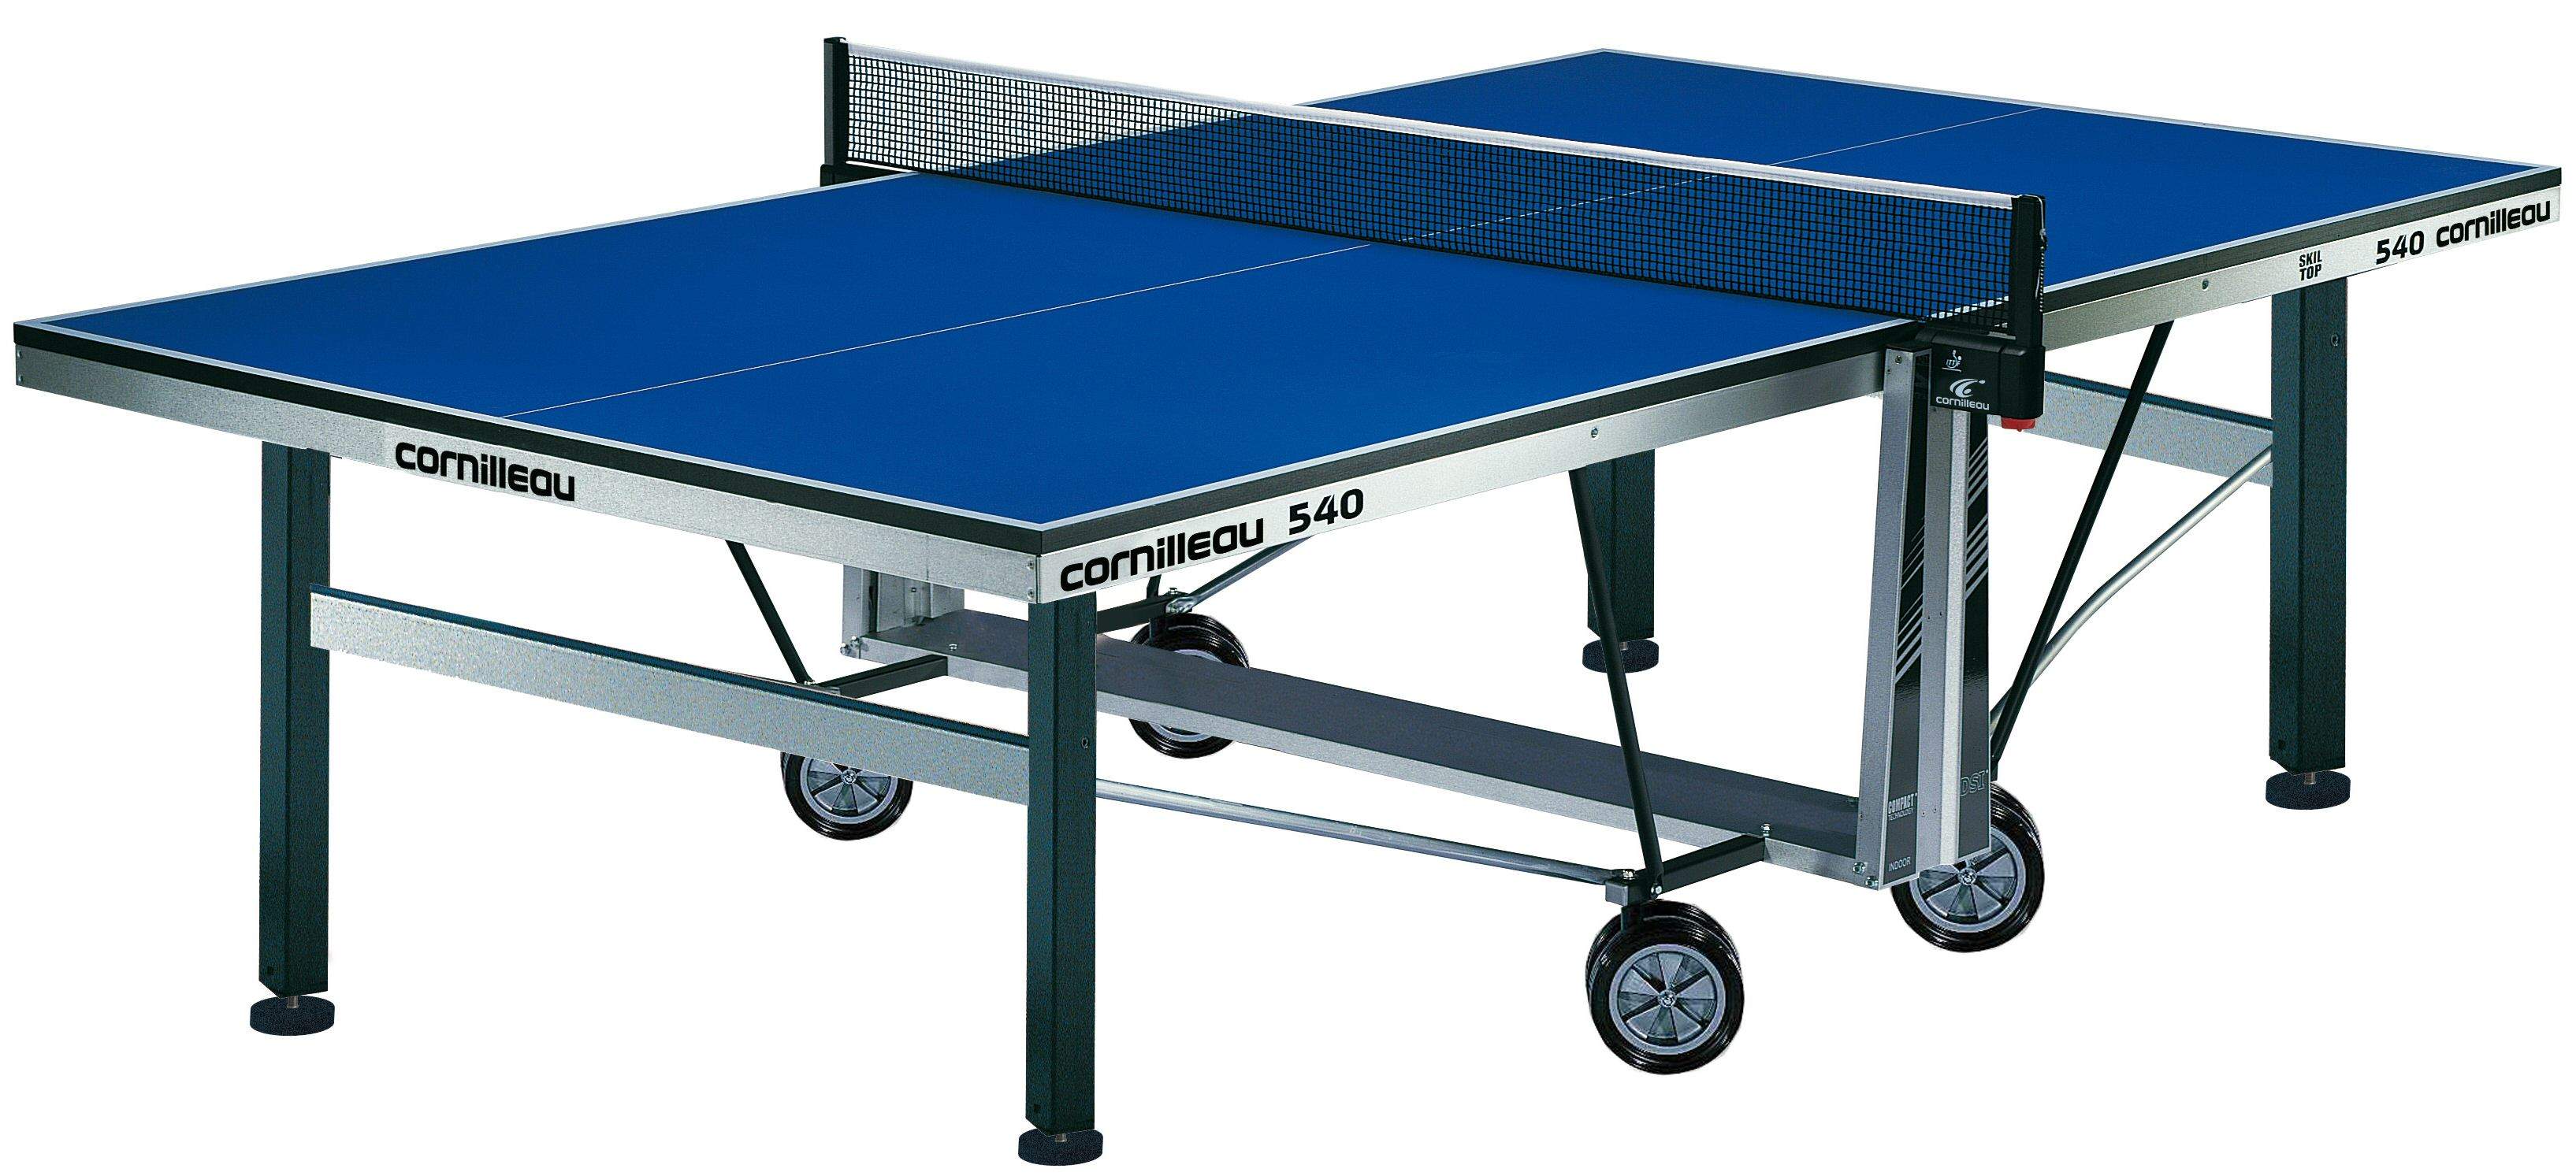 Cornilleau - Prix table de ping pong ...